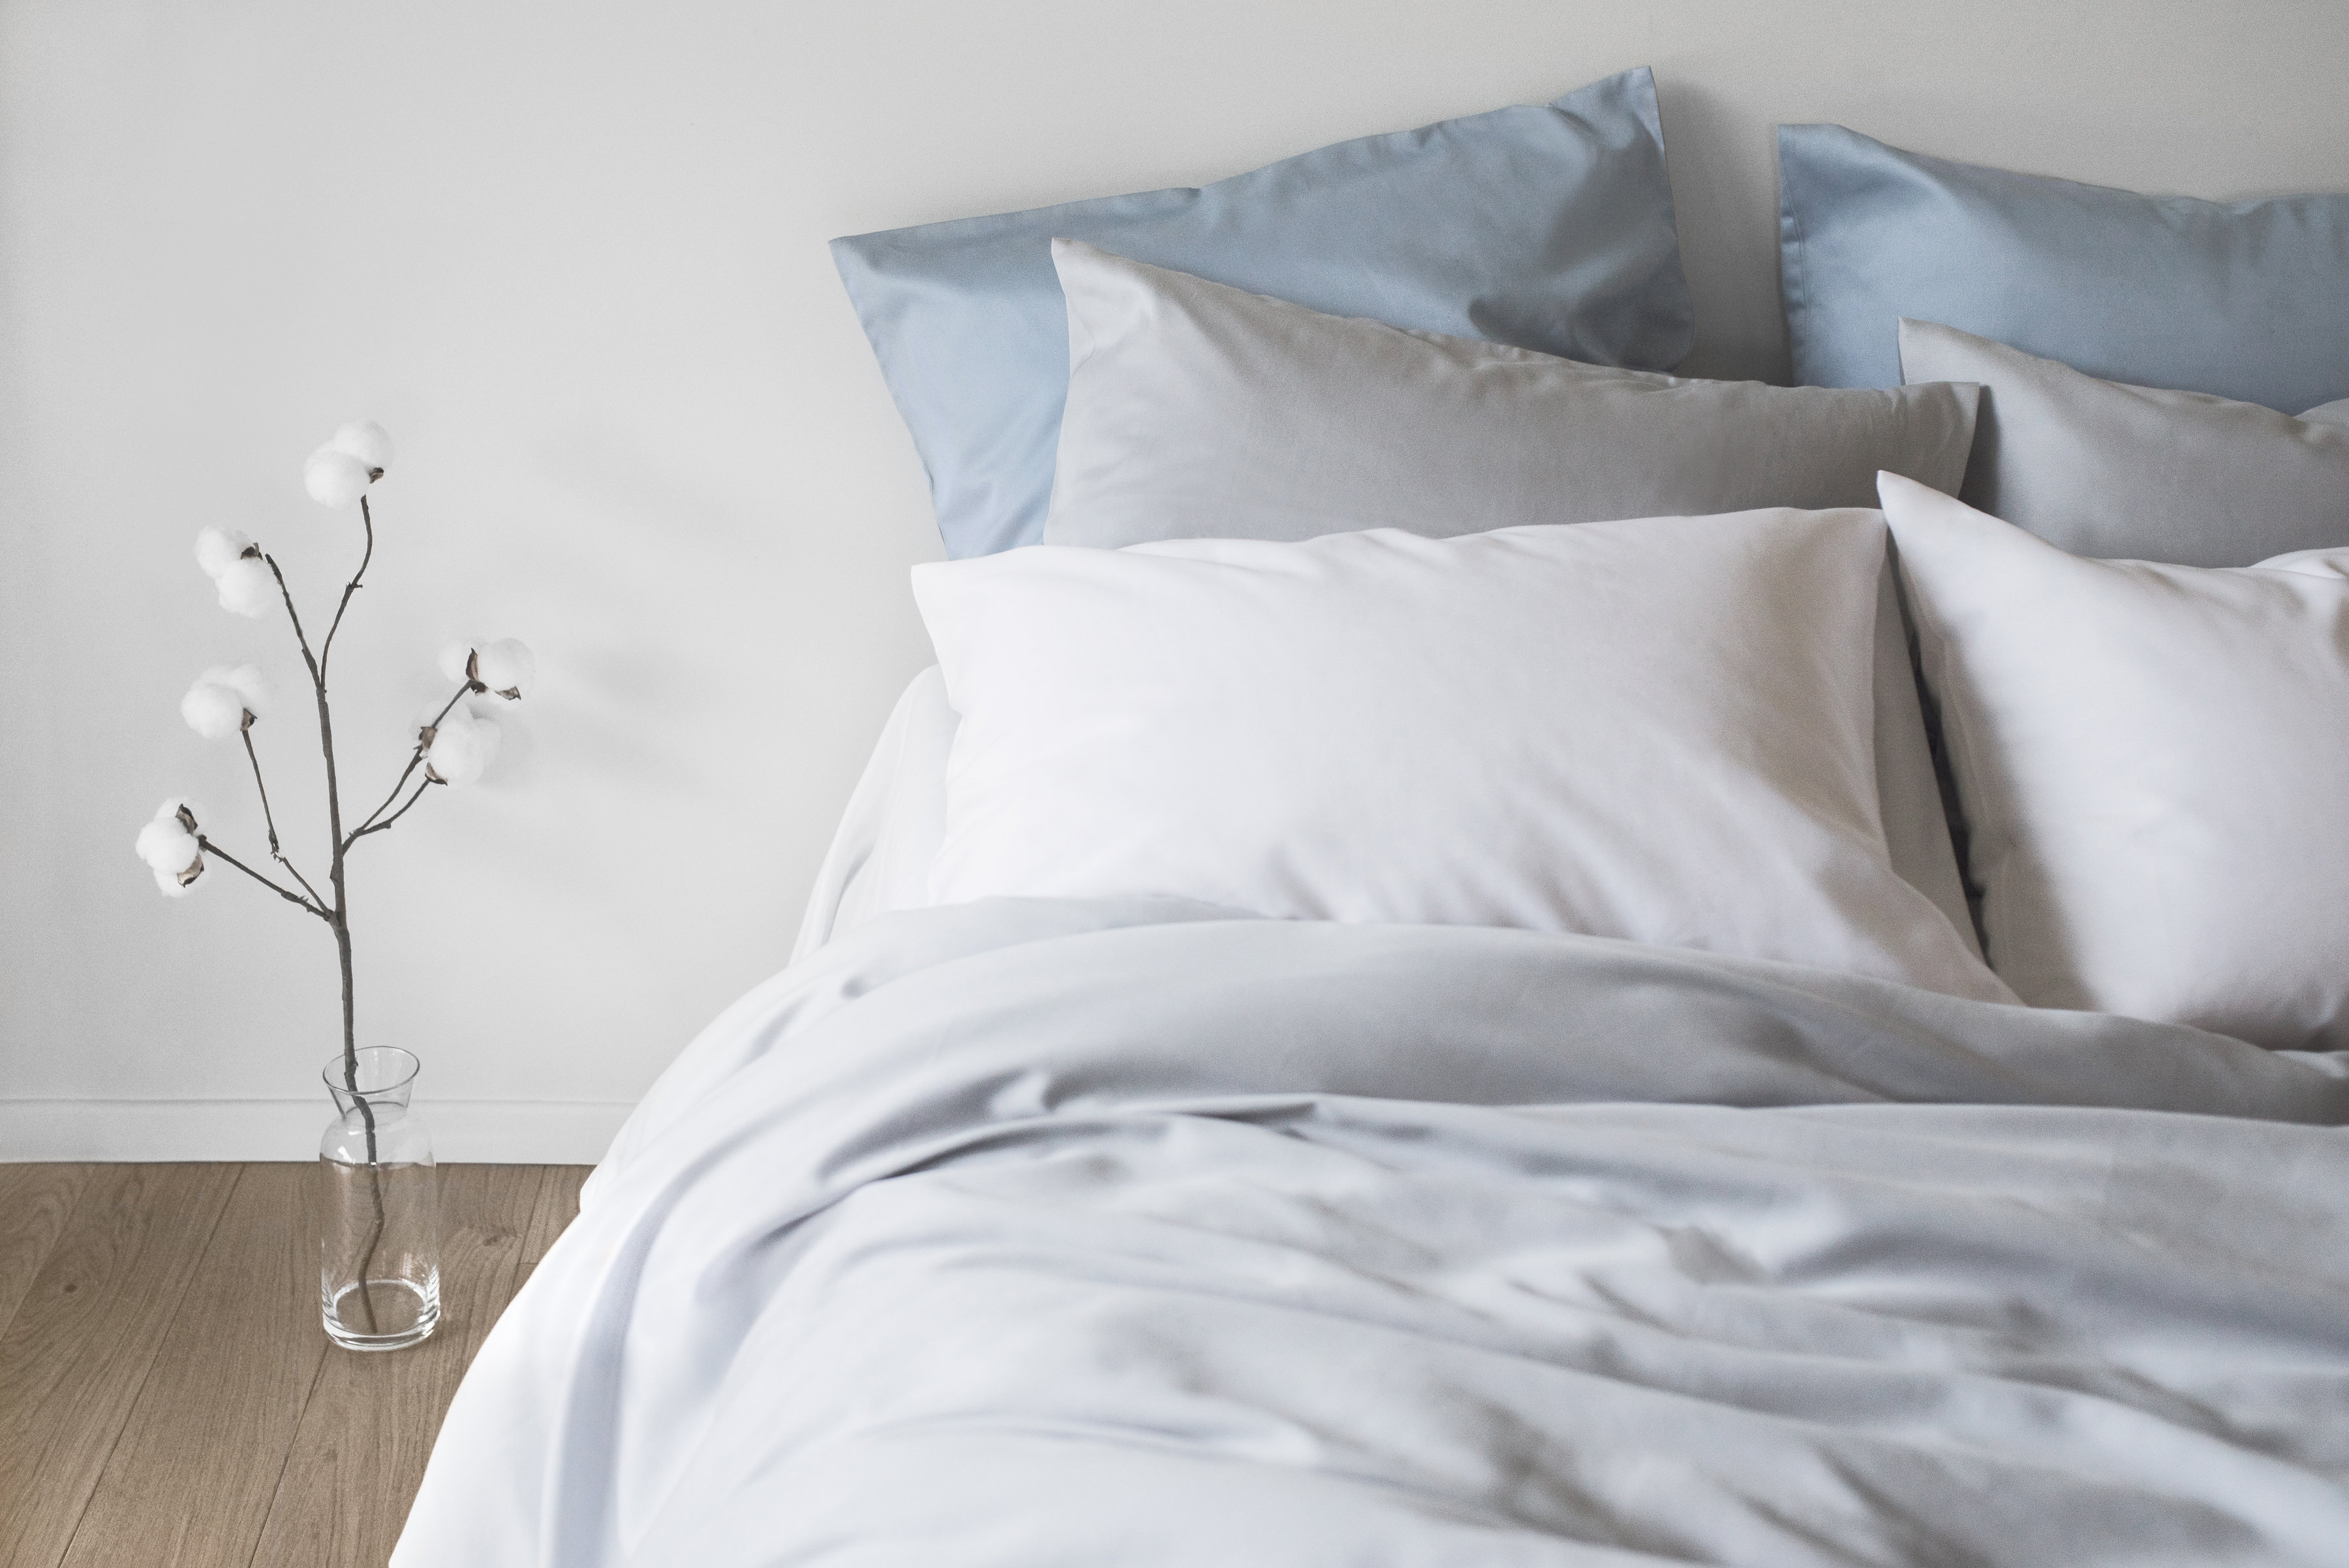 How to make your bed with Bedroommood COMBO set